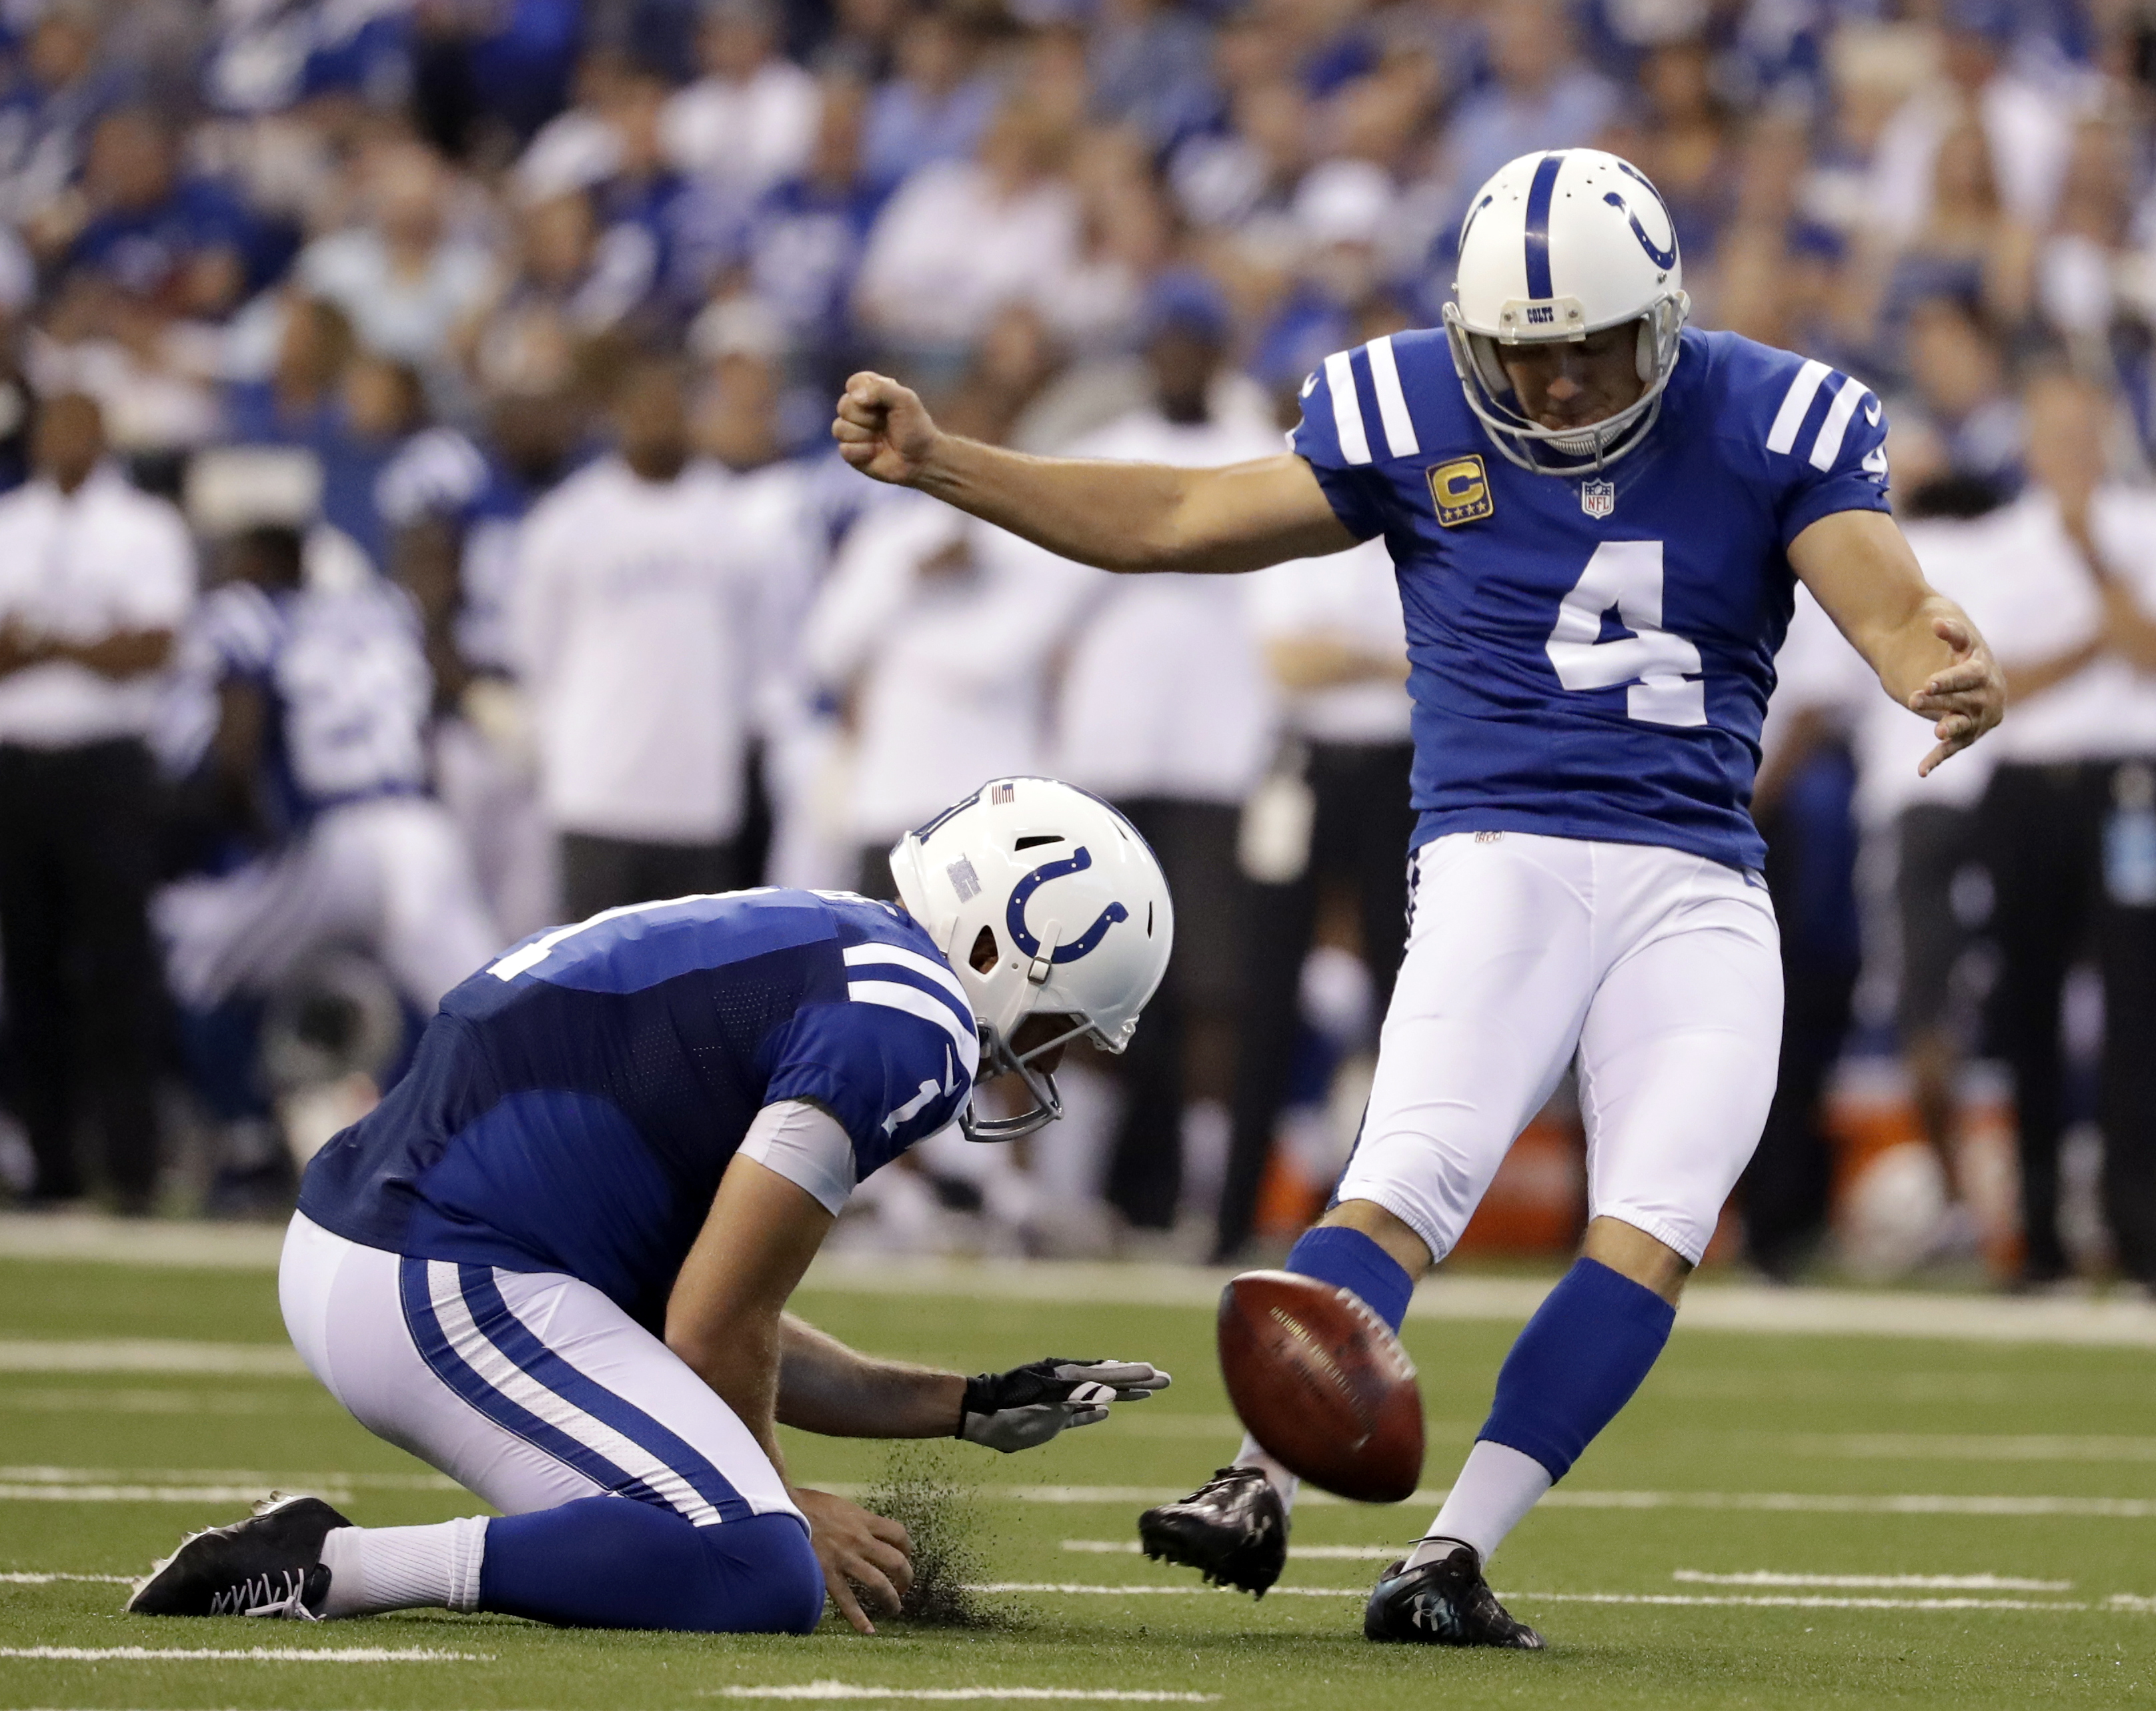 FILE - In this Sept. 25, 2016, file photo, Indianapolis Colts' Adam Vinatieri (4) kicks a 33-yard field goal out of the hold of Pat McAfee (1) during the first half of an NFL football game against the San Diego Chargers in Indianapolis. Around the Colts'